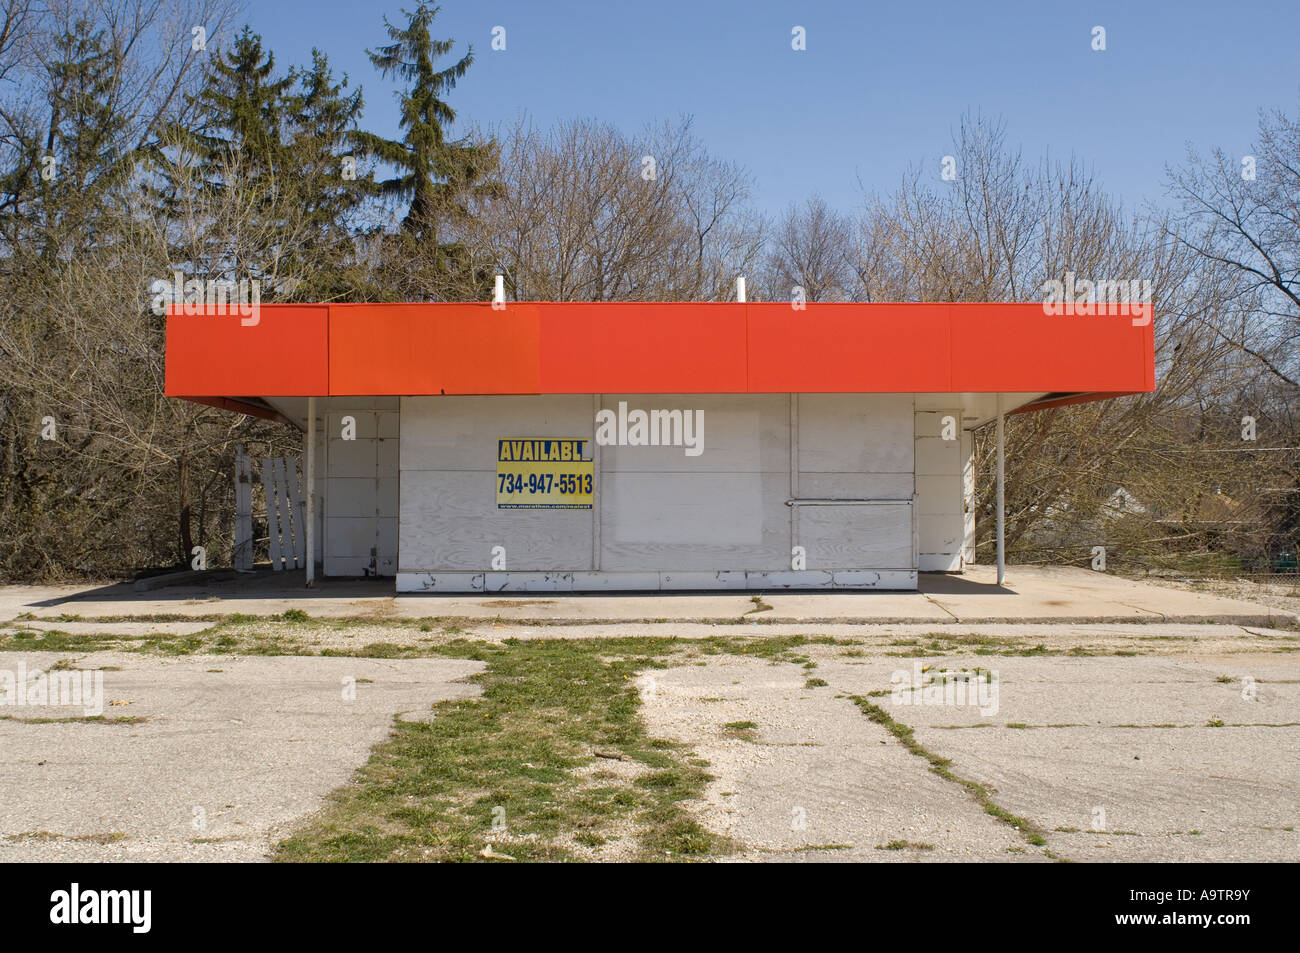 Pavement Petrol Station High Resolution Stock Photography And Images Alamy